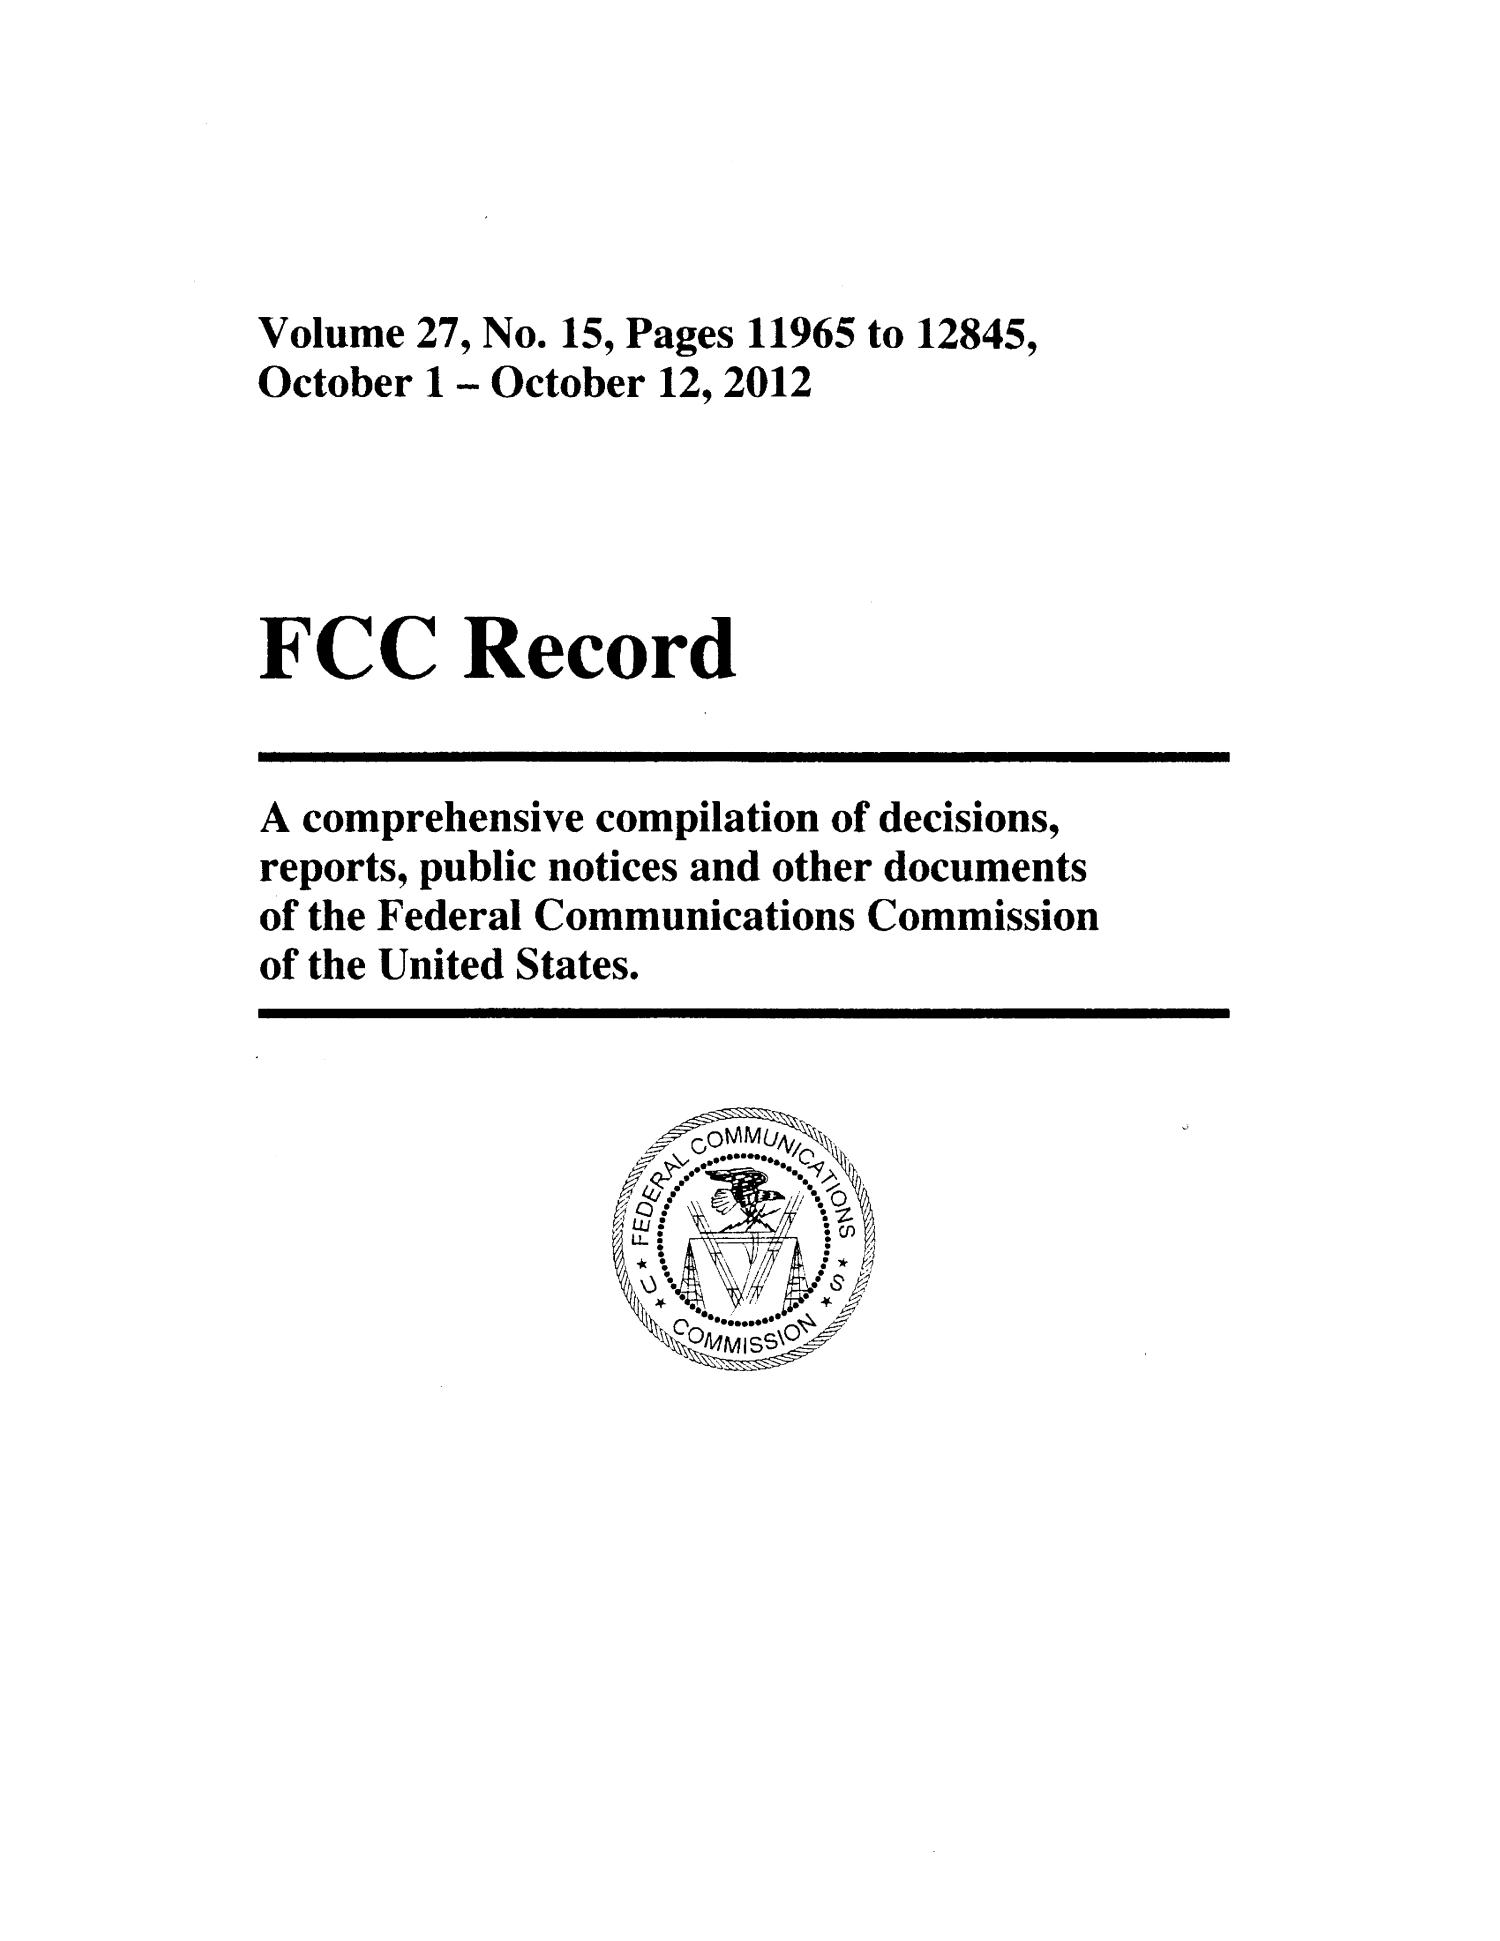 FCC Record, Volume 27, No. 15, Pages 11965 to 12845, October 1 - October 12, 2012                                                                                                      Title Page